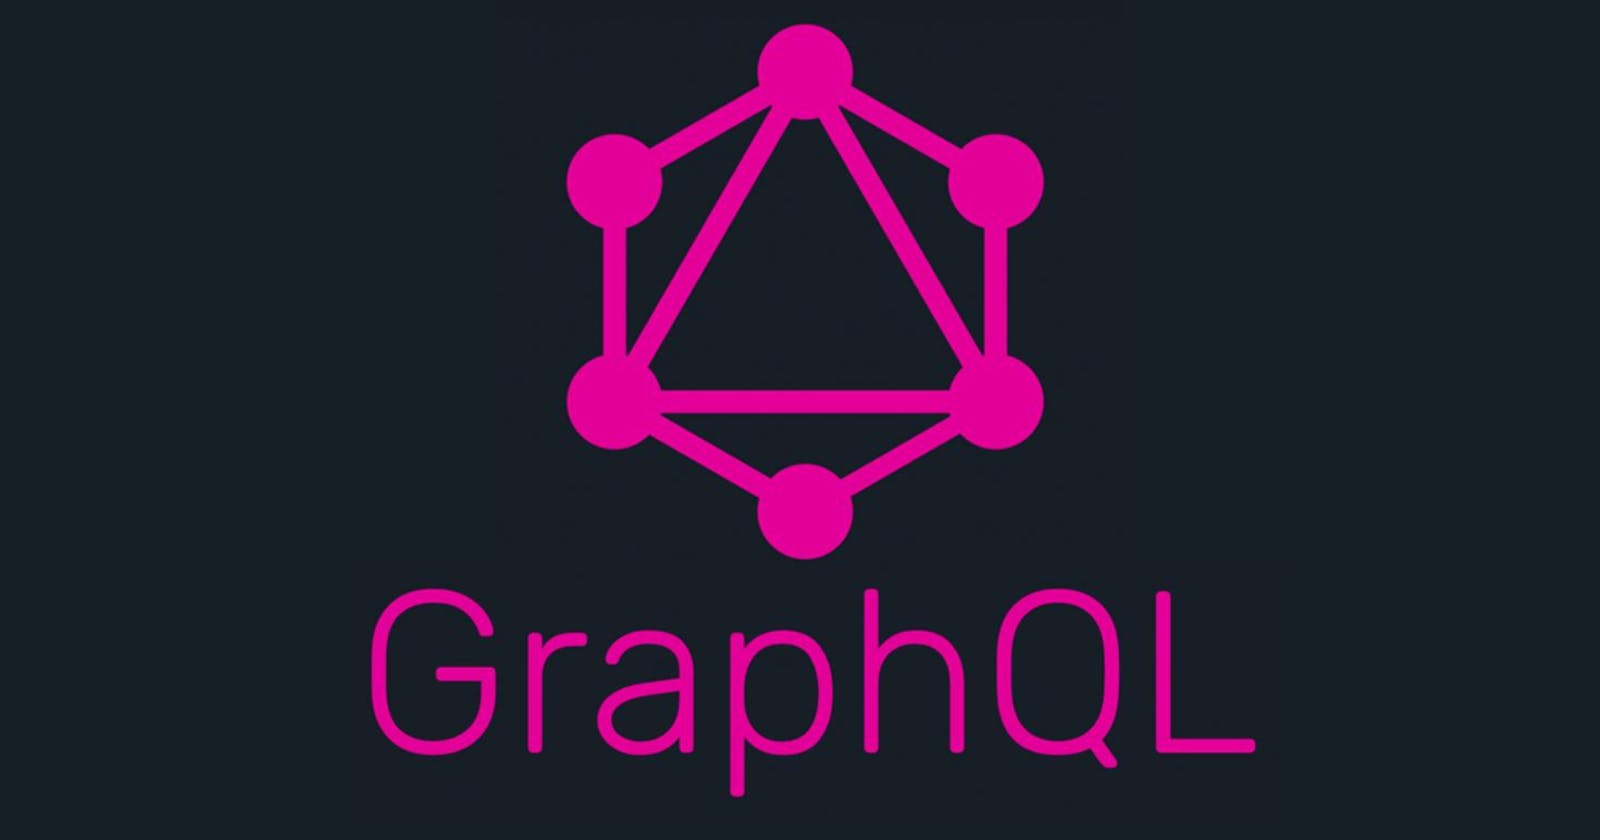 Why you should use GraphQL